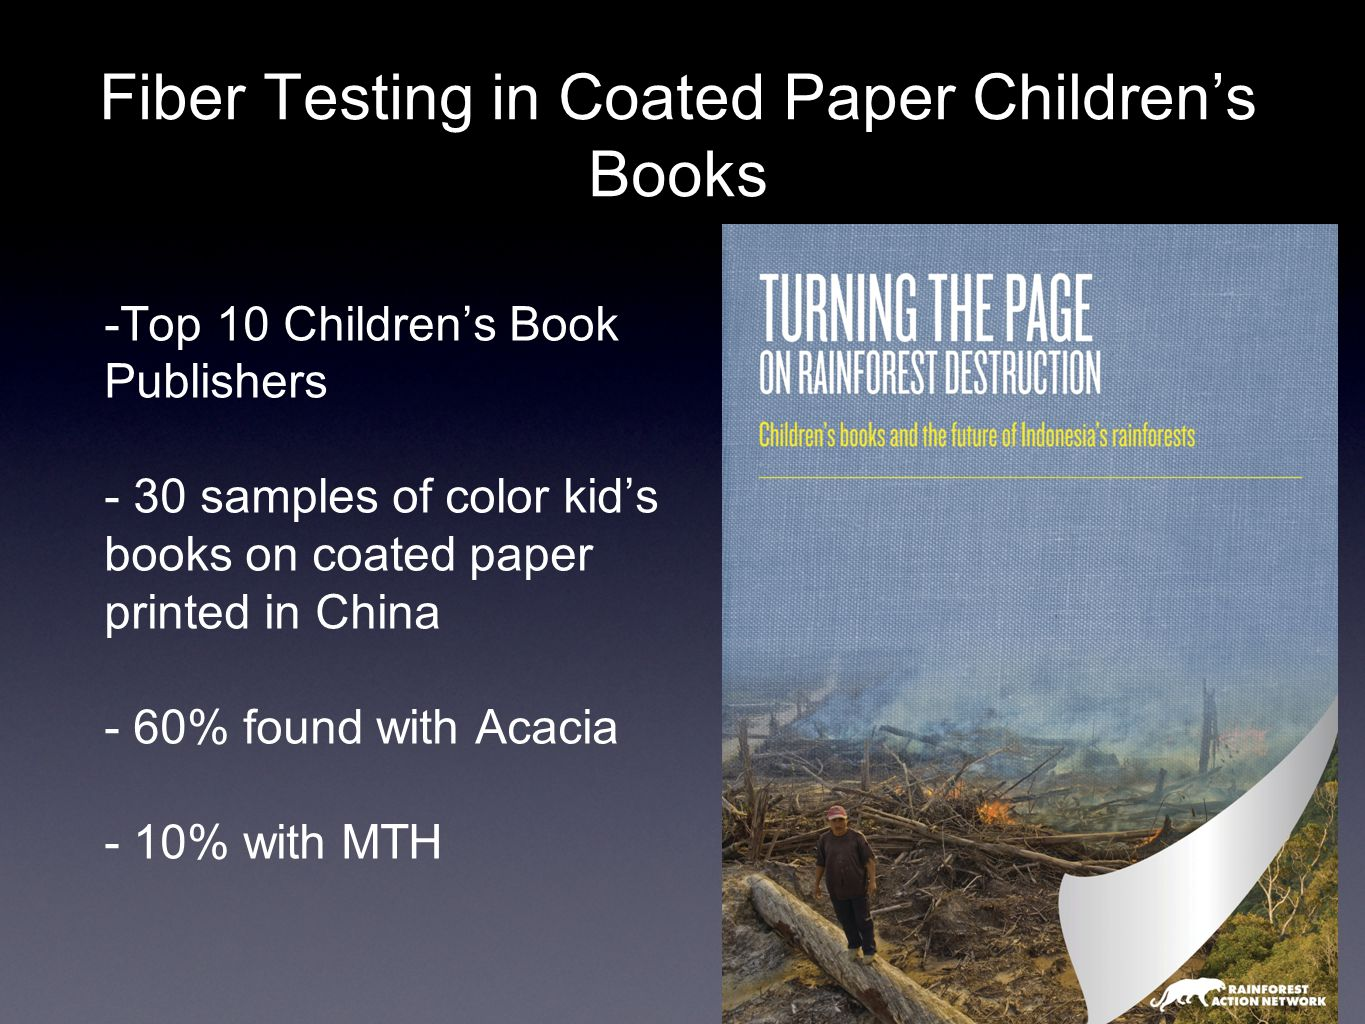 Fiber Testing in Coated Paper Children's Books -Top 10 Children's Book Publishers - 30 samples of color kid's books on coated paper printed in China - 60% found with Acacia - 10% with MTH